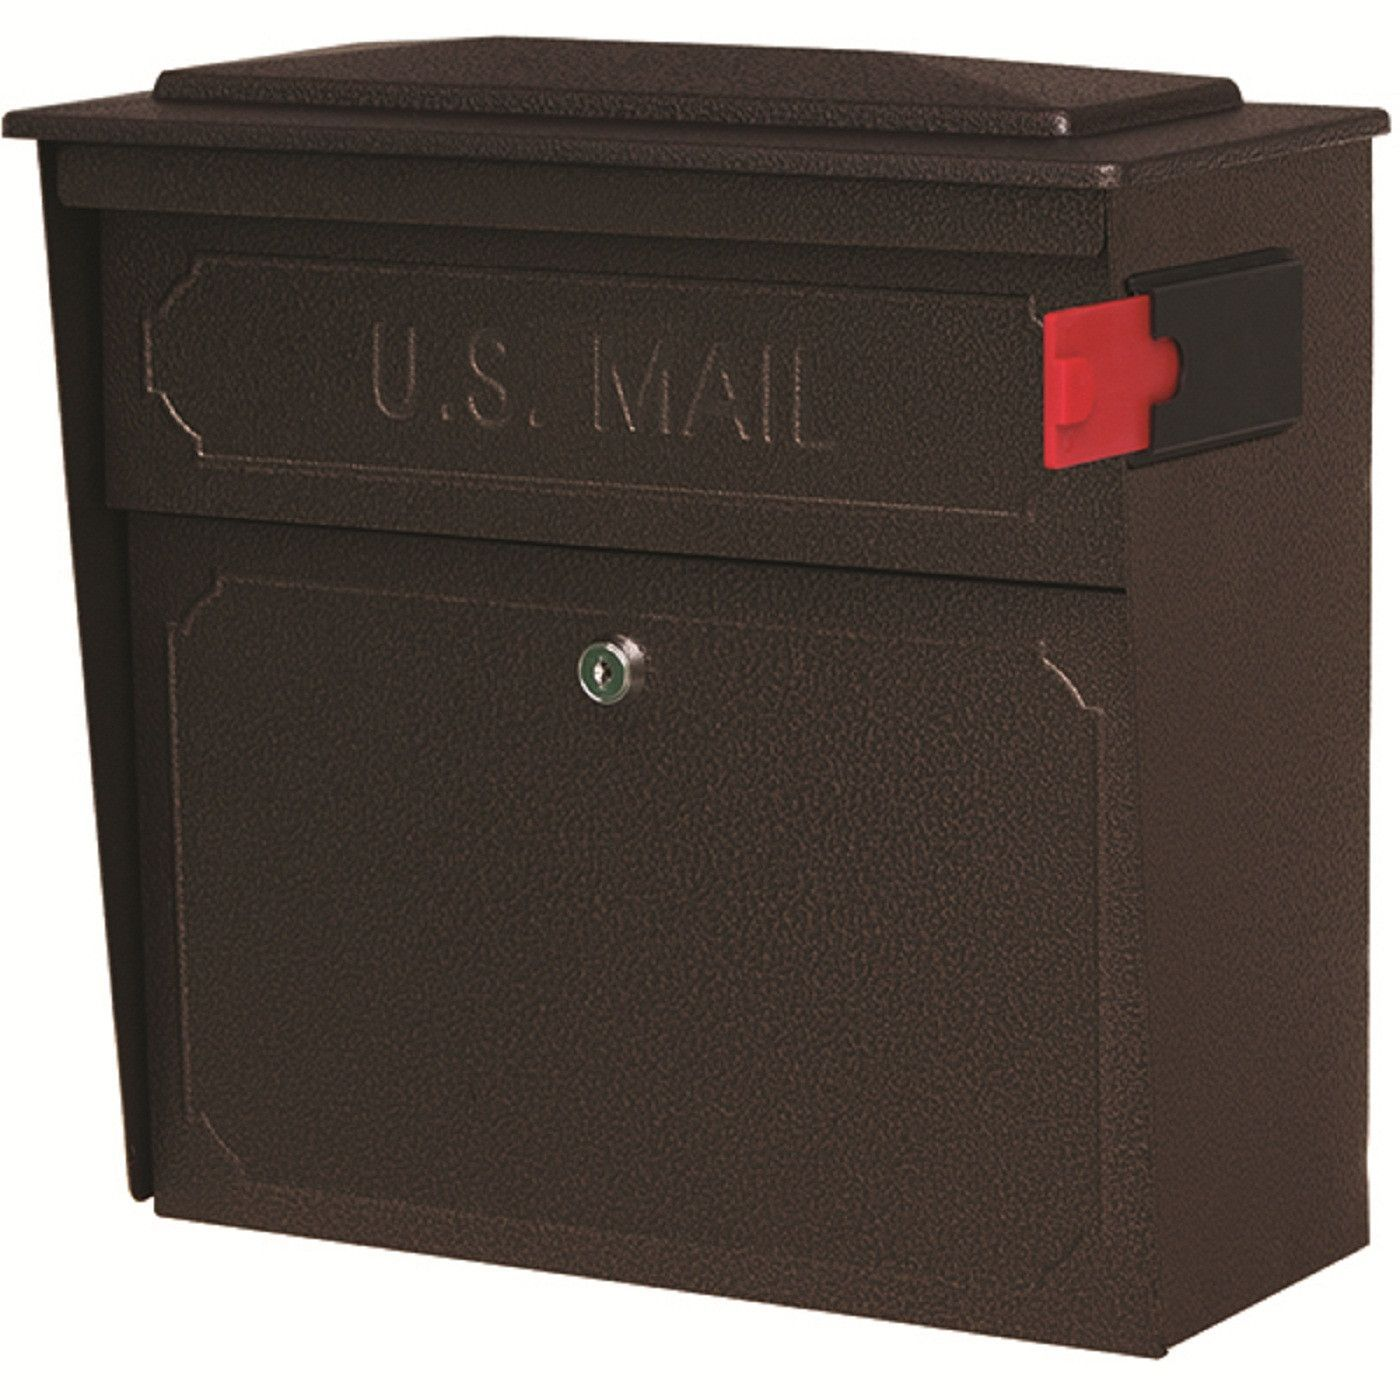 Mail Boss Townhouse Security Locking Wall Mount Mailbox Wall Mount Mailbox Mounted Mailbox Security Mailbox